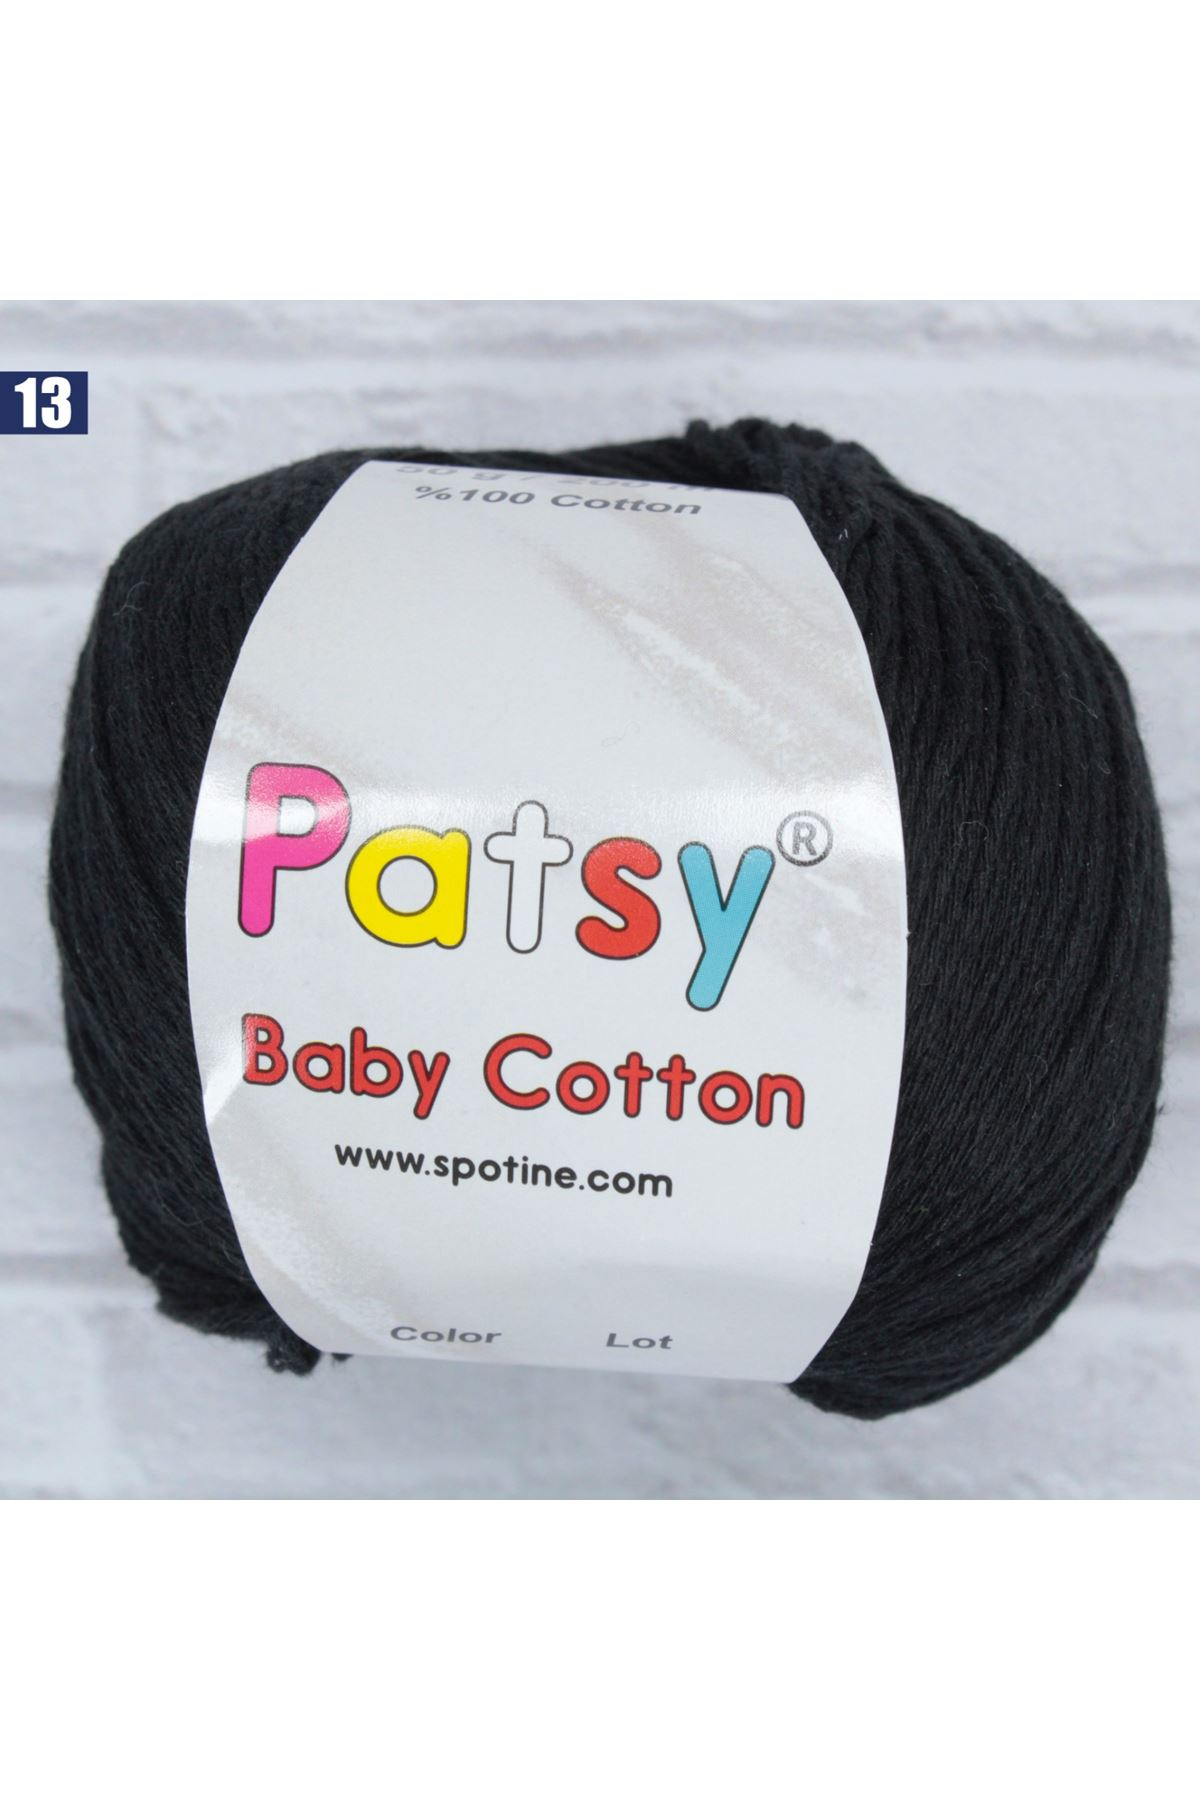 Patsy Baby Cotton 13